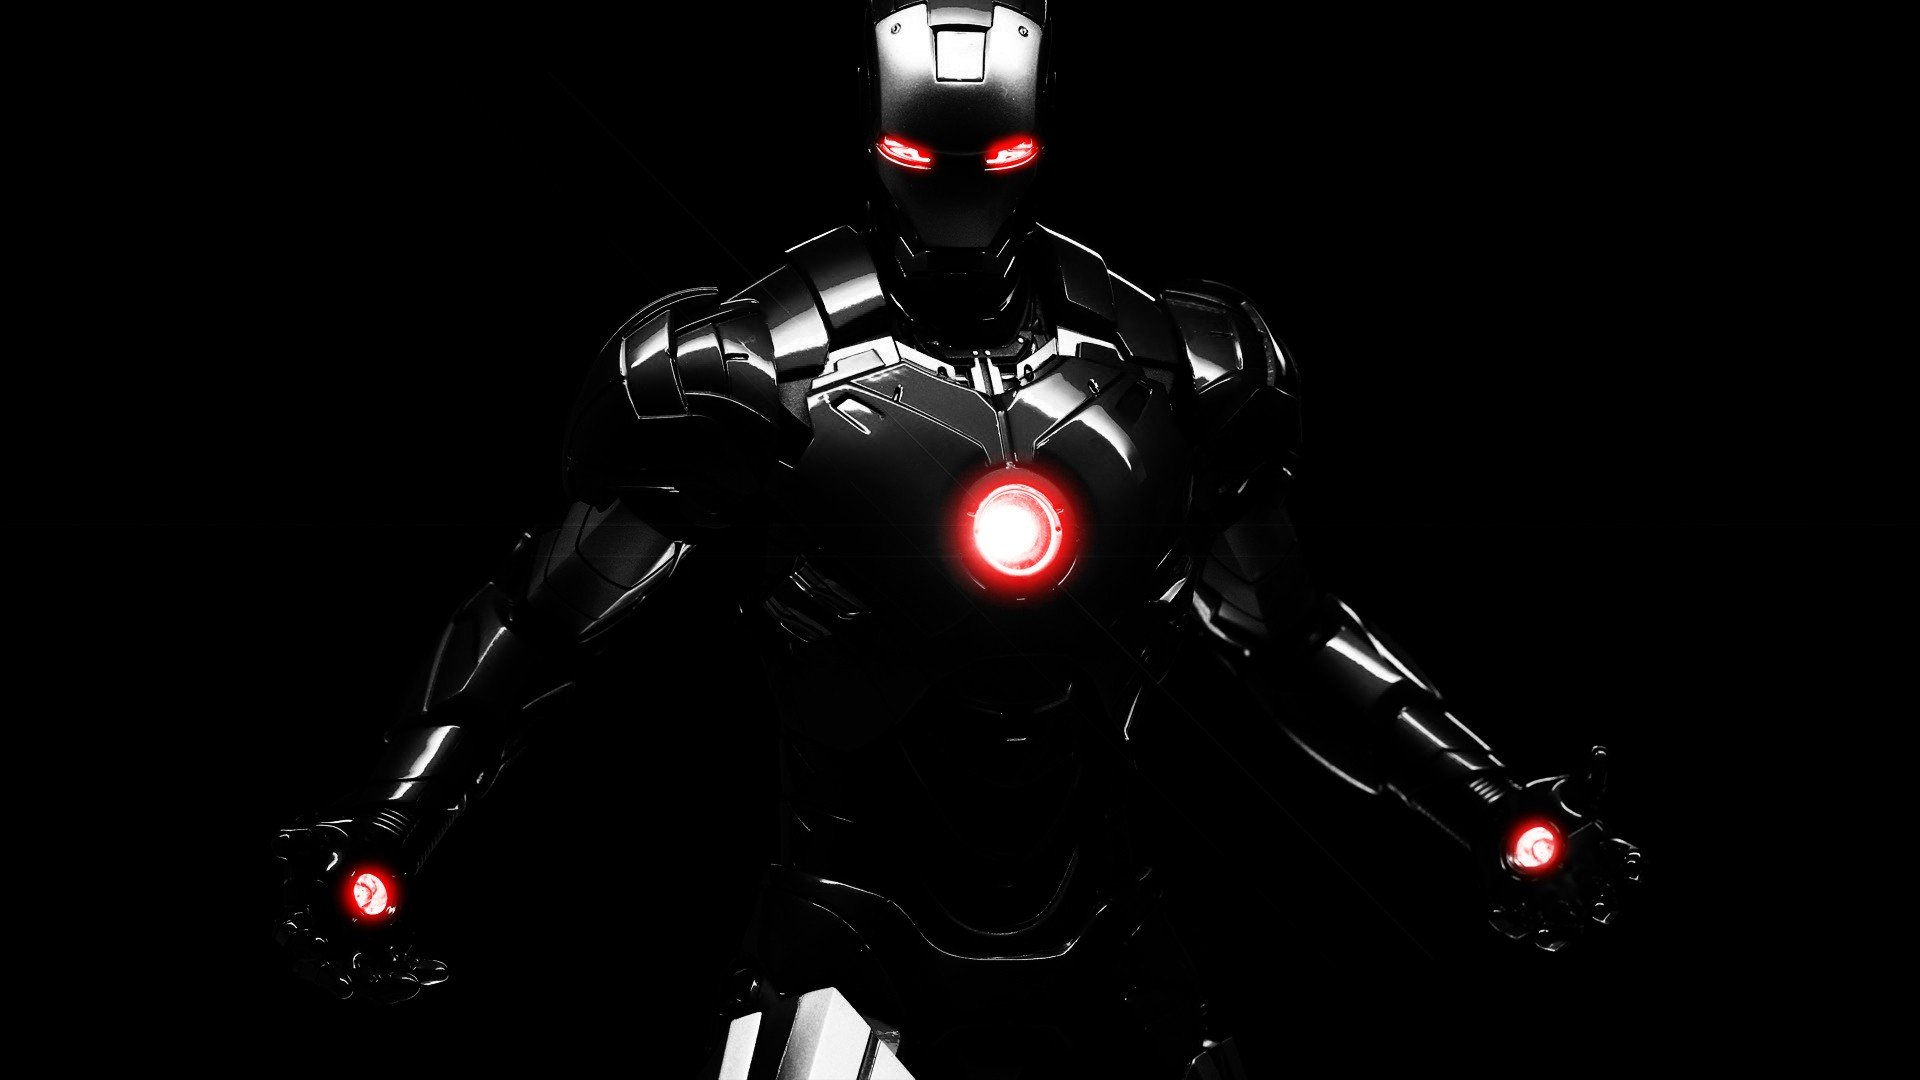 290955 blackangel 416035 iron man super hero superheroes marvel hd wallpaper 1696760 black iron man background picture new best hd